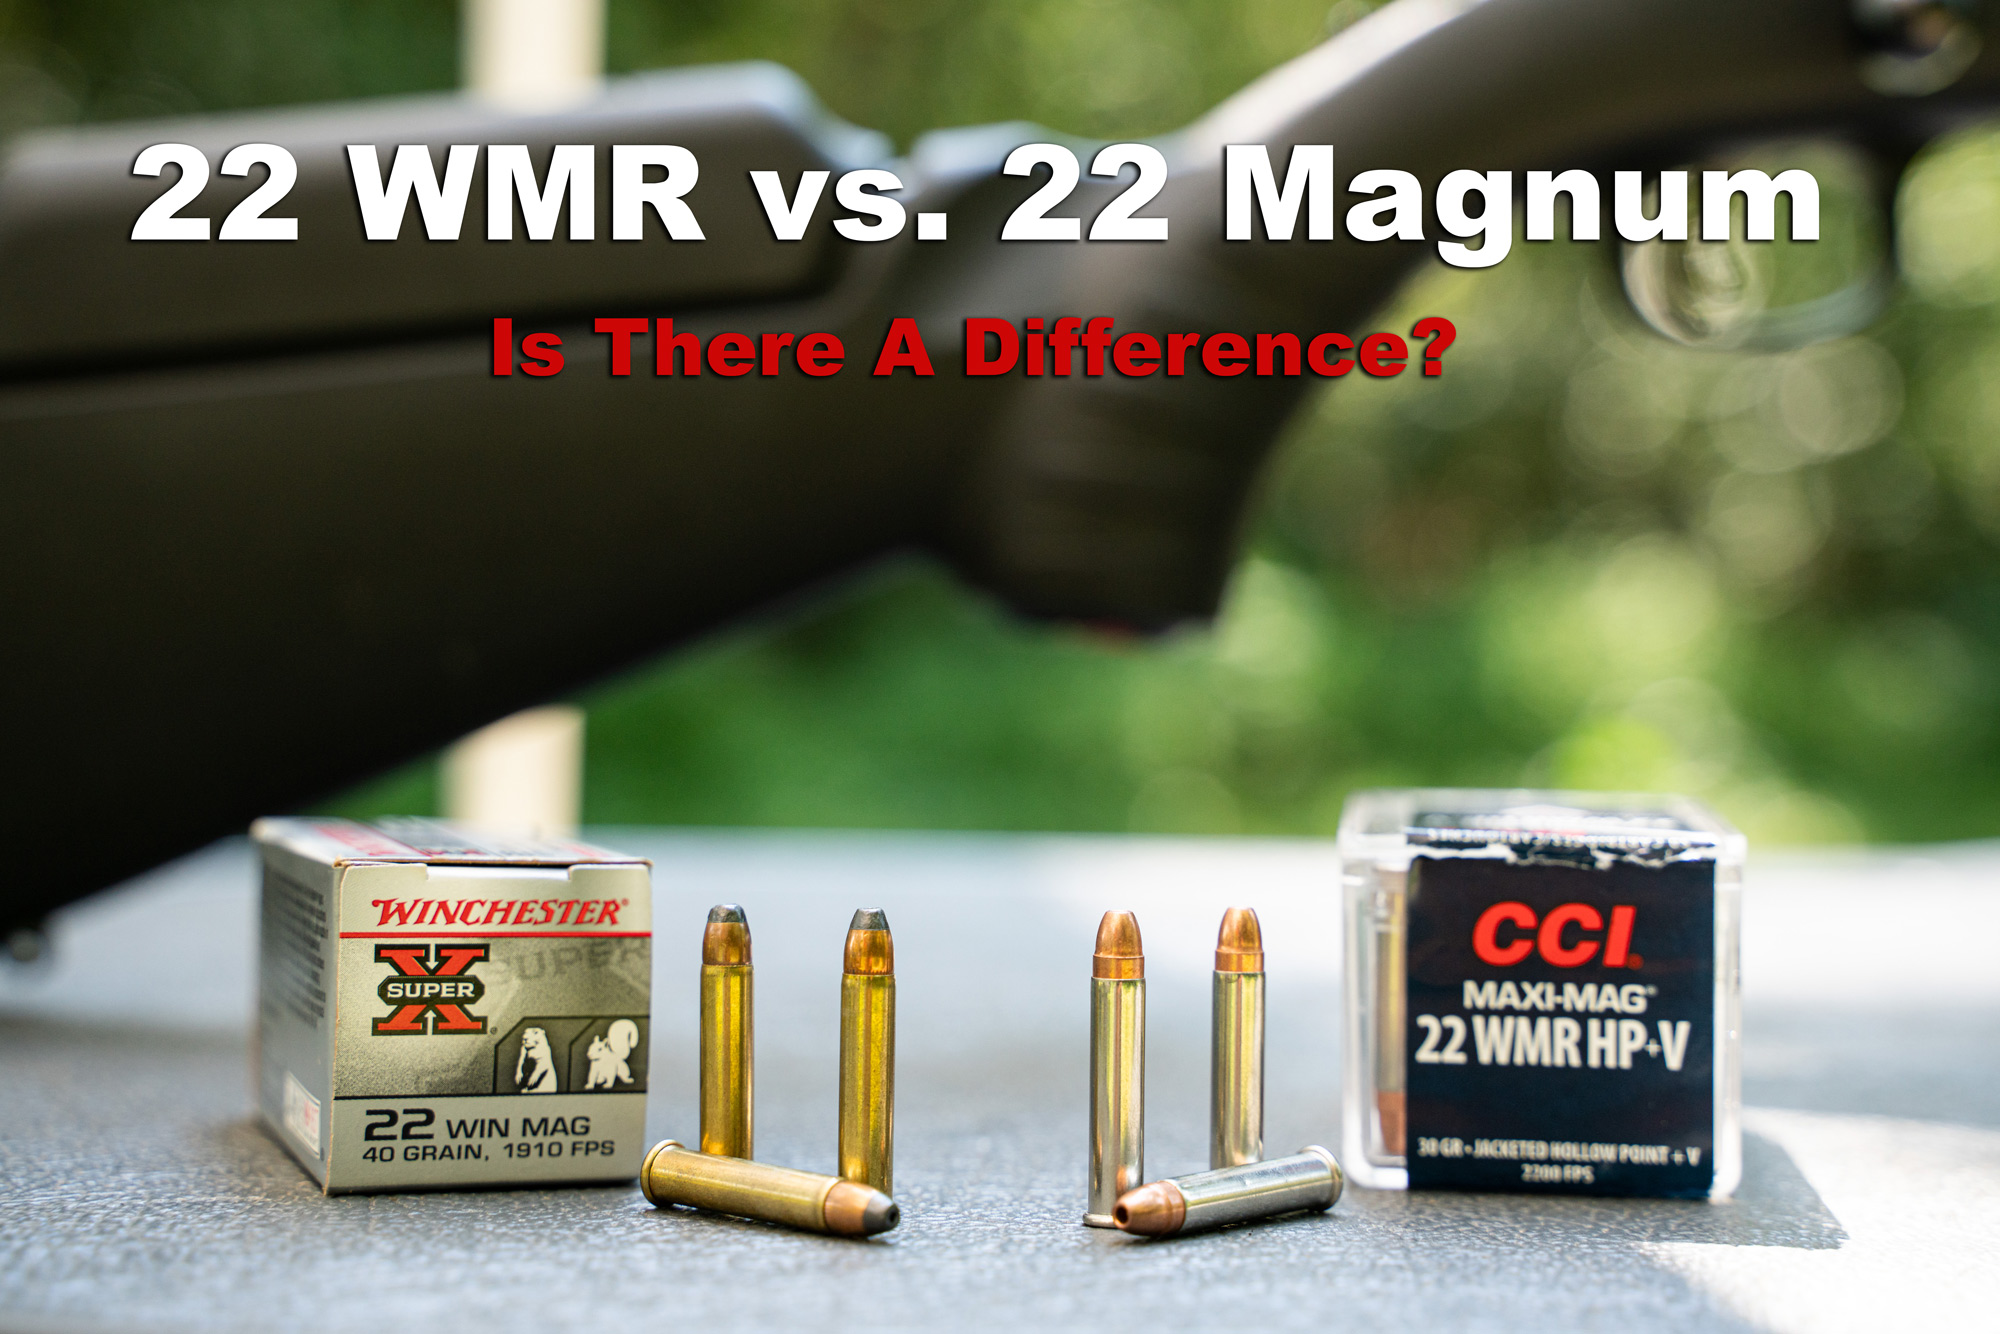 22 WMR vs 22 Mag ammo with a rifle displayed